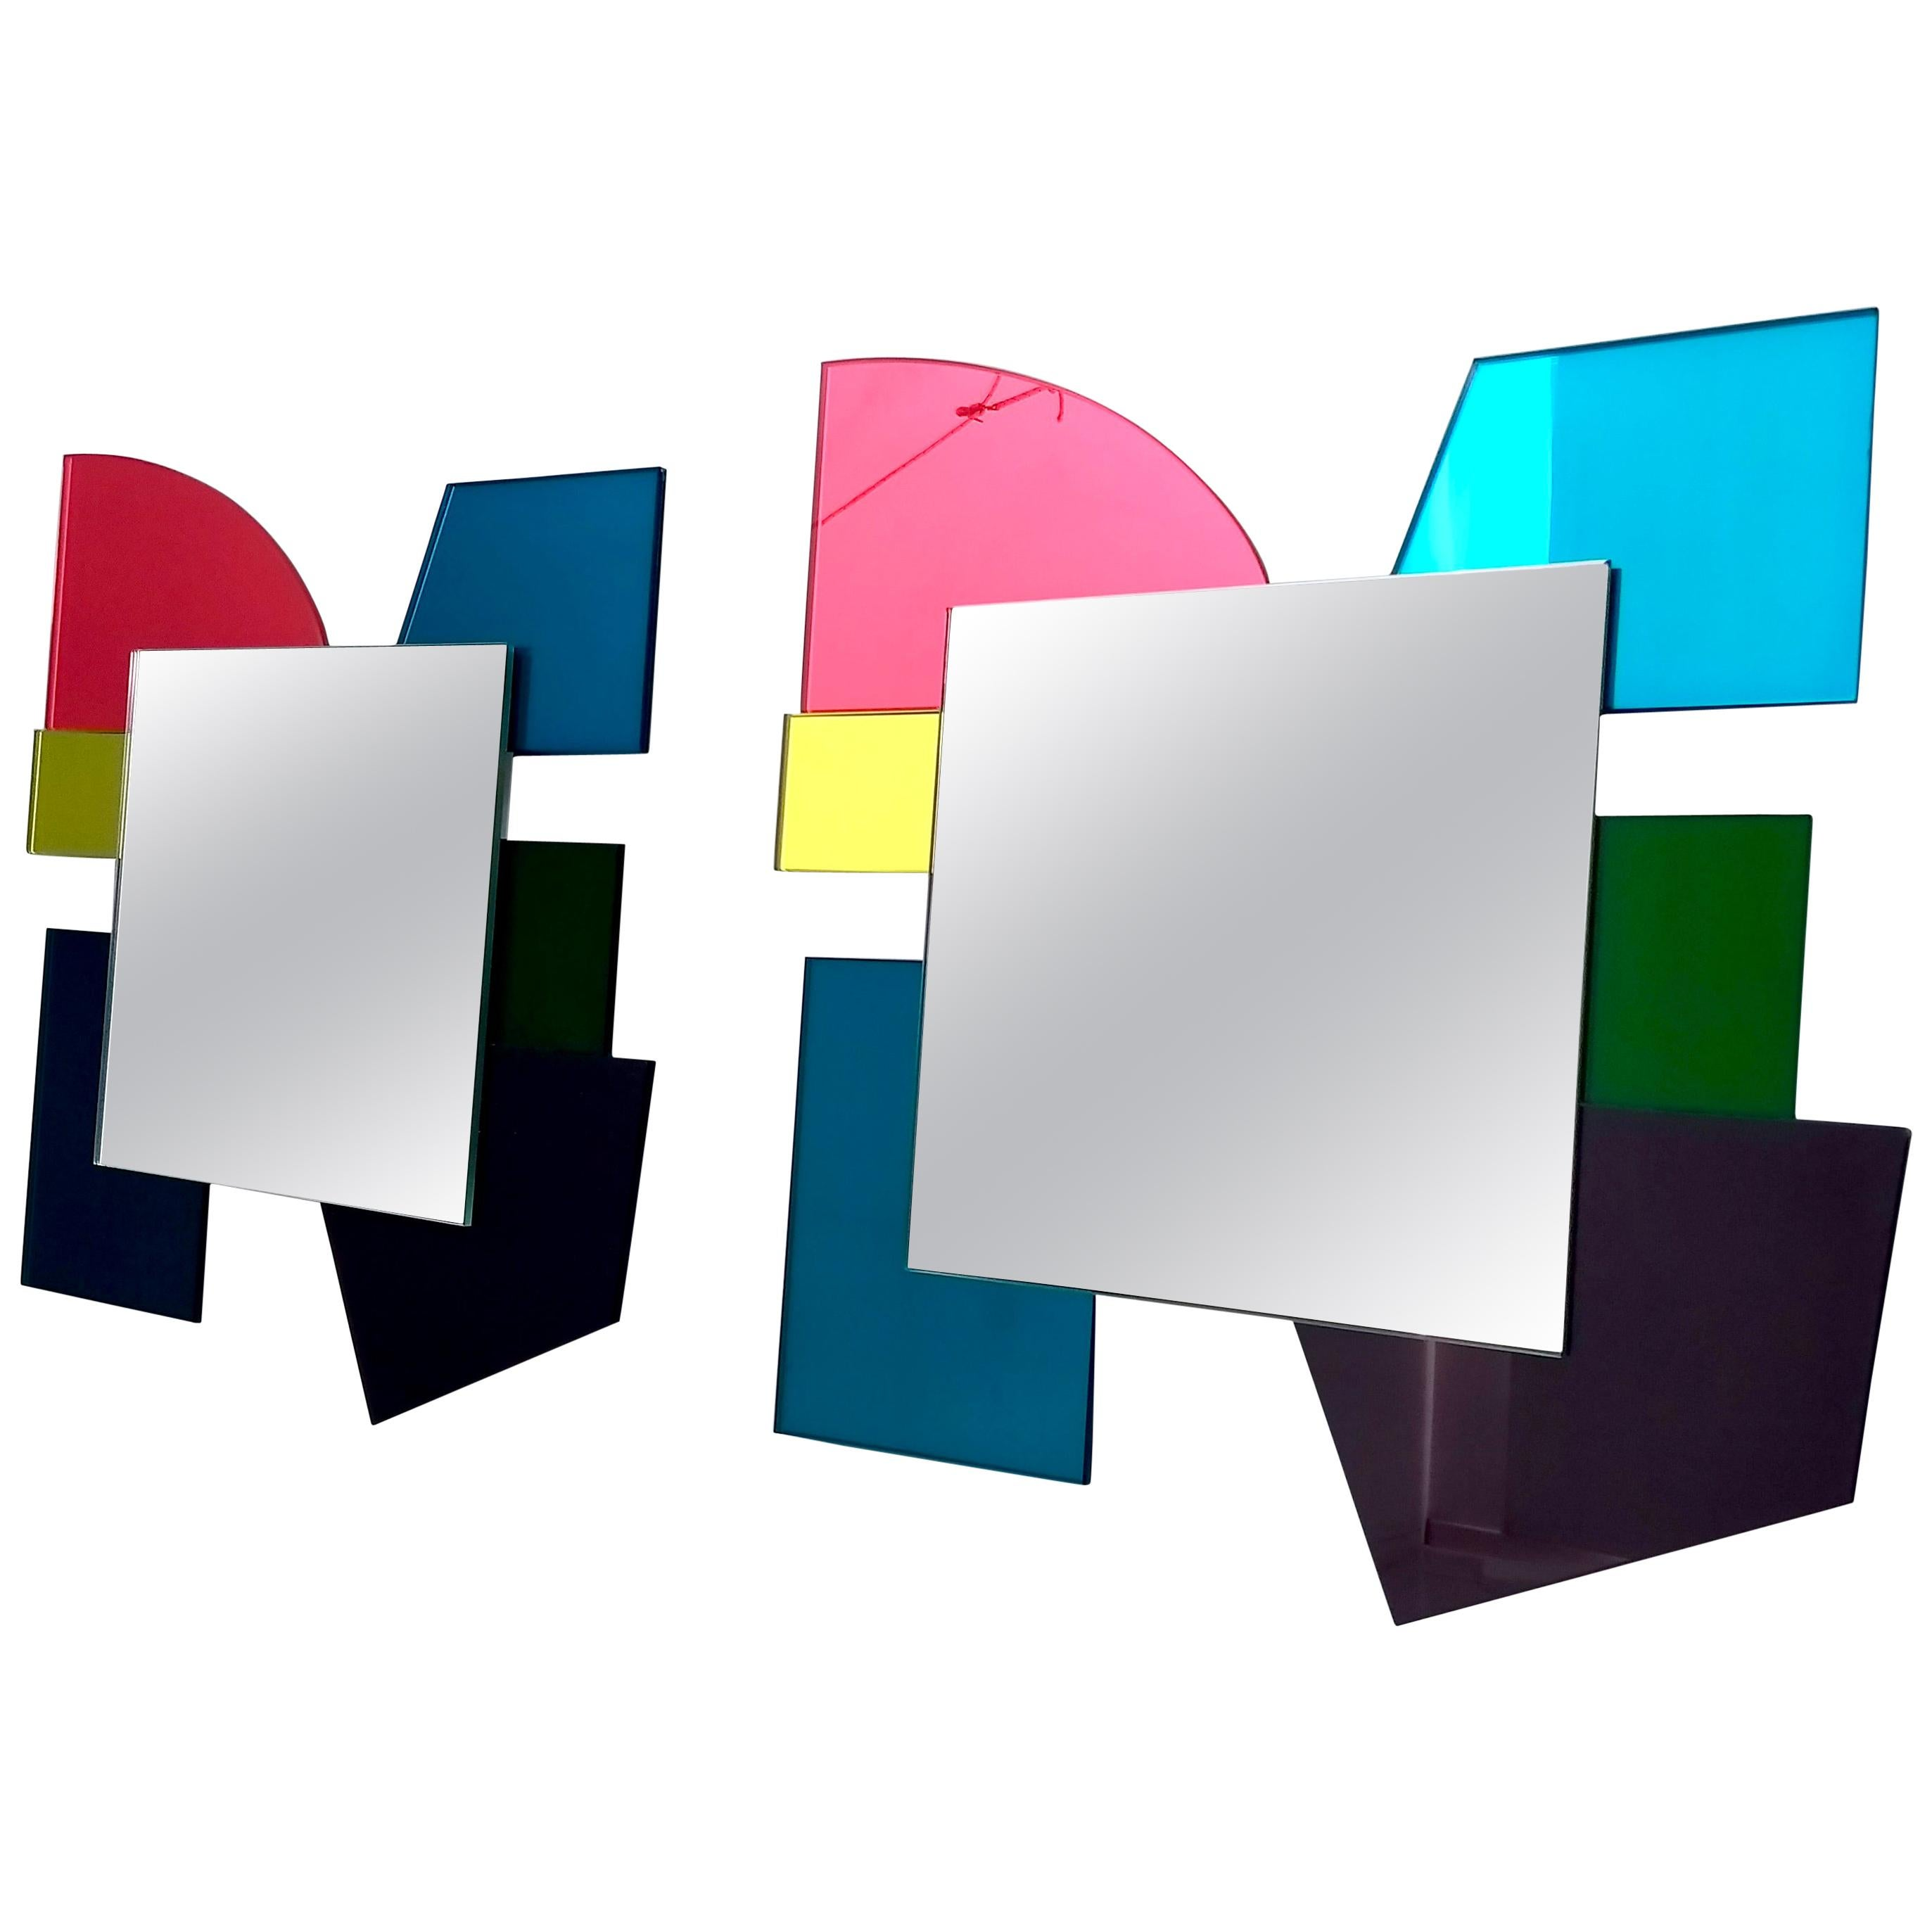 Pair of Colored Wall Mirrors in the Style of Ettore Sottsass, Italy, 2010s